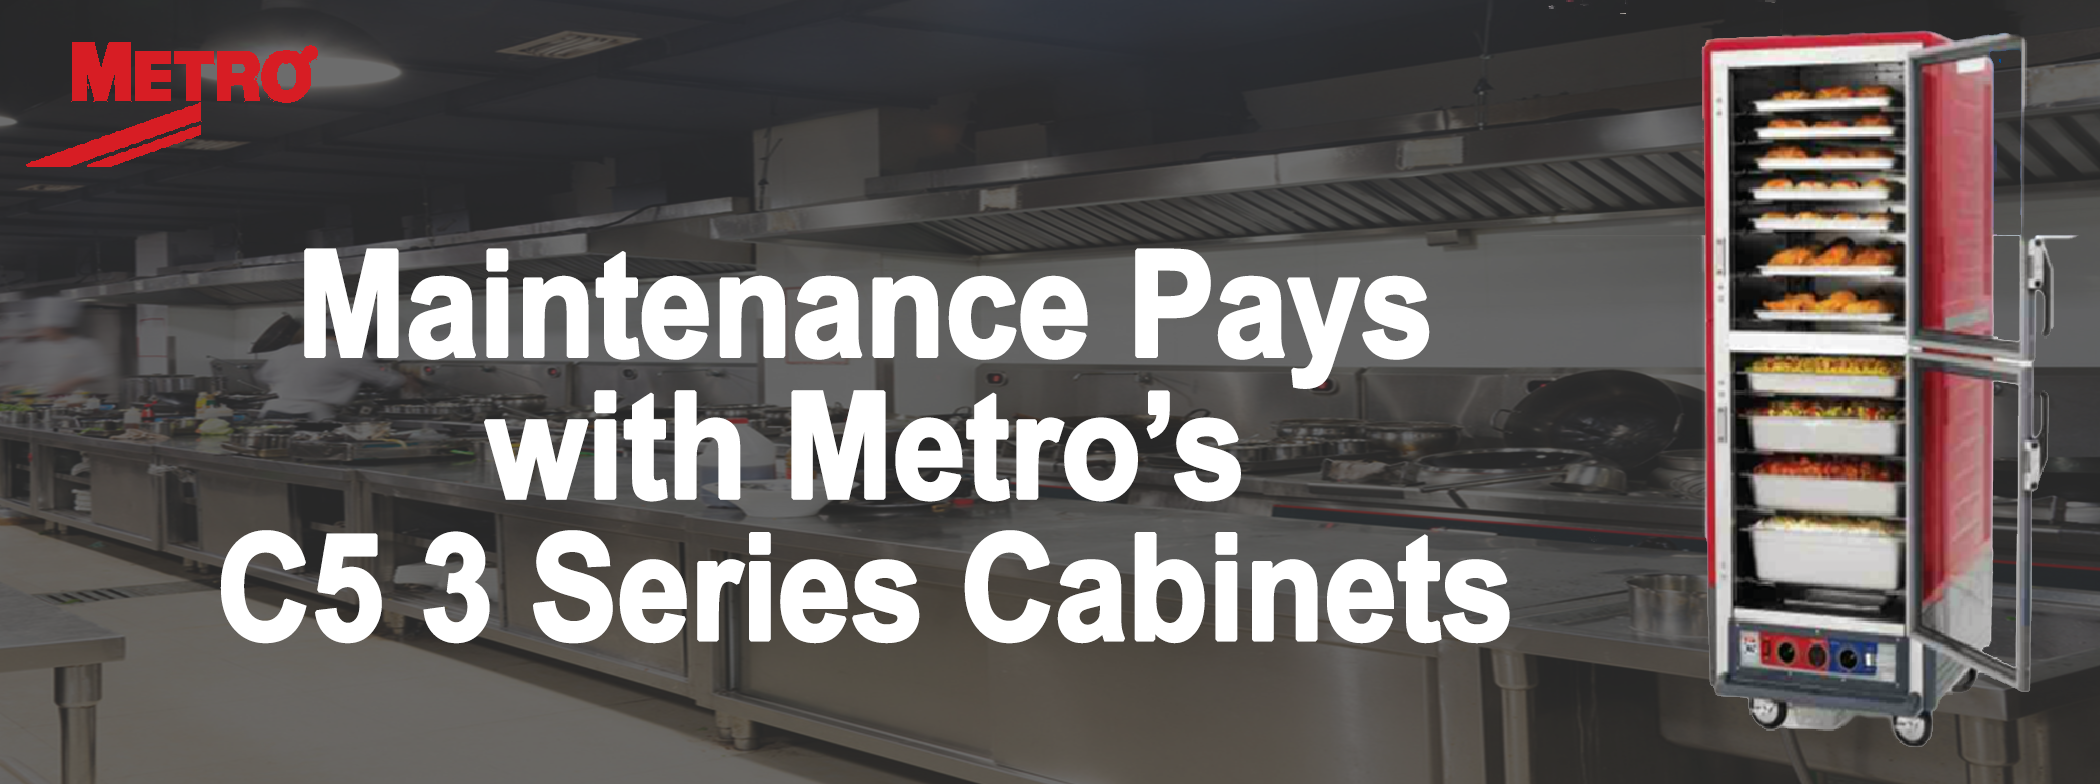 "A graphic reading, ""Maintenance Pays with C5 3 Series Cabinets"""